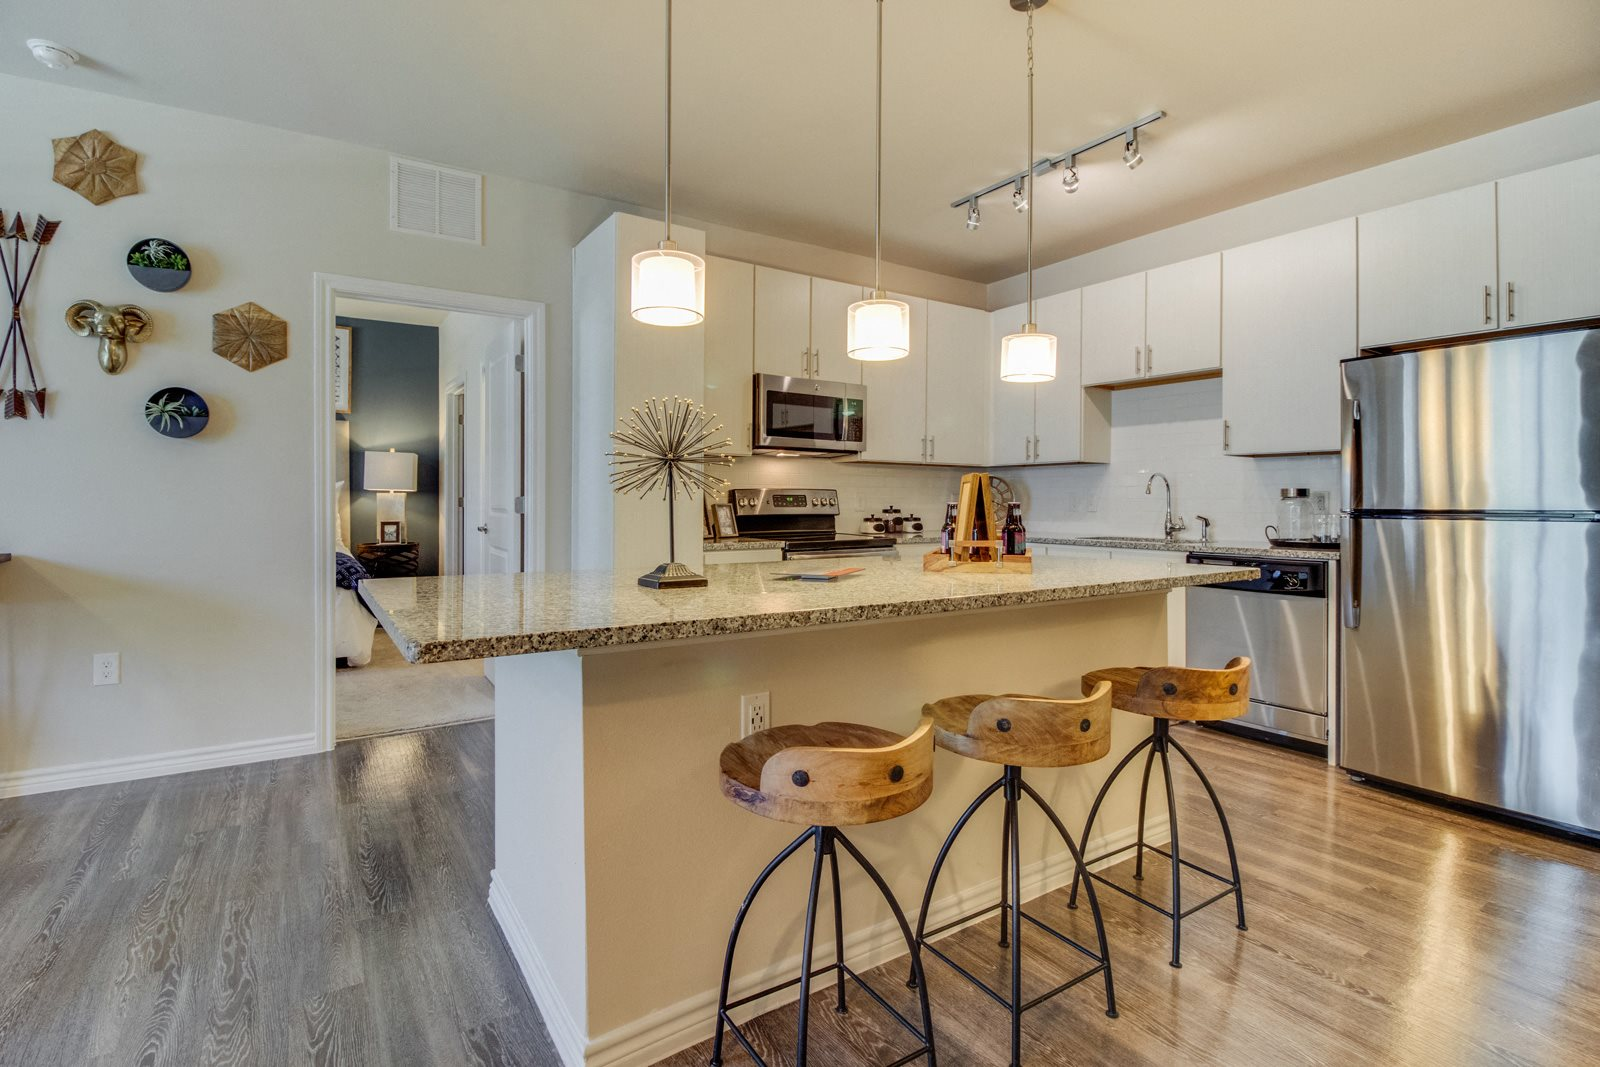 Gourmet Kitchens with Stainless Steel Appliances at Windsor Republic Place, 5708 W Parmer Lane, Austin